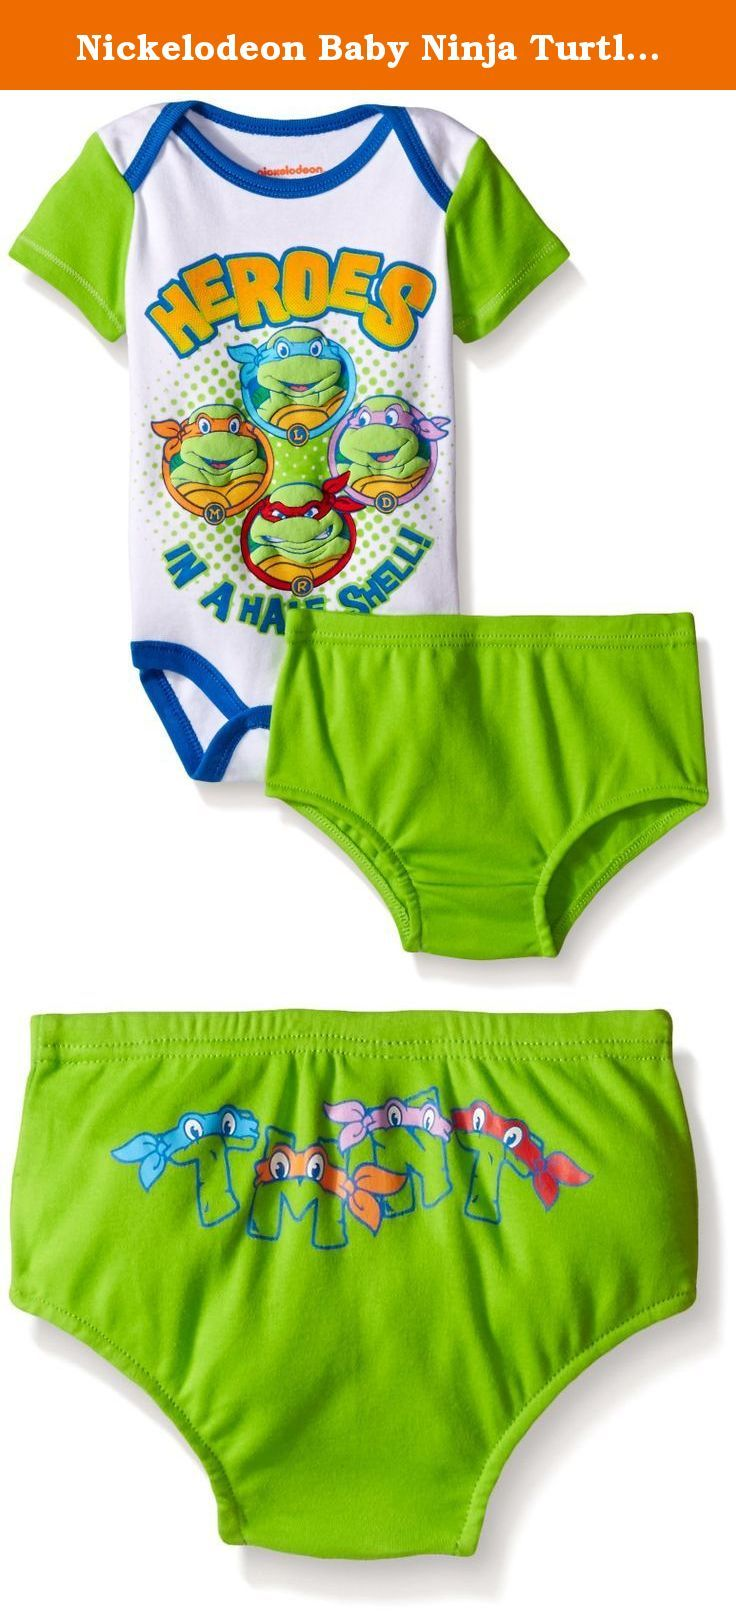 Nickelodeon Baby Ninja Turtle 2 Piece Soft Diaper Cover Set, Green, 3-6 Months. This adorable 2-piece set is a great value for your baby. Great character features with fun artwork and attractive colors in any season.